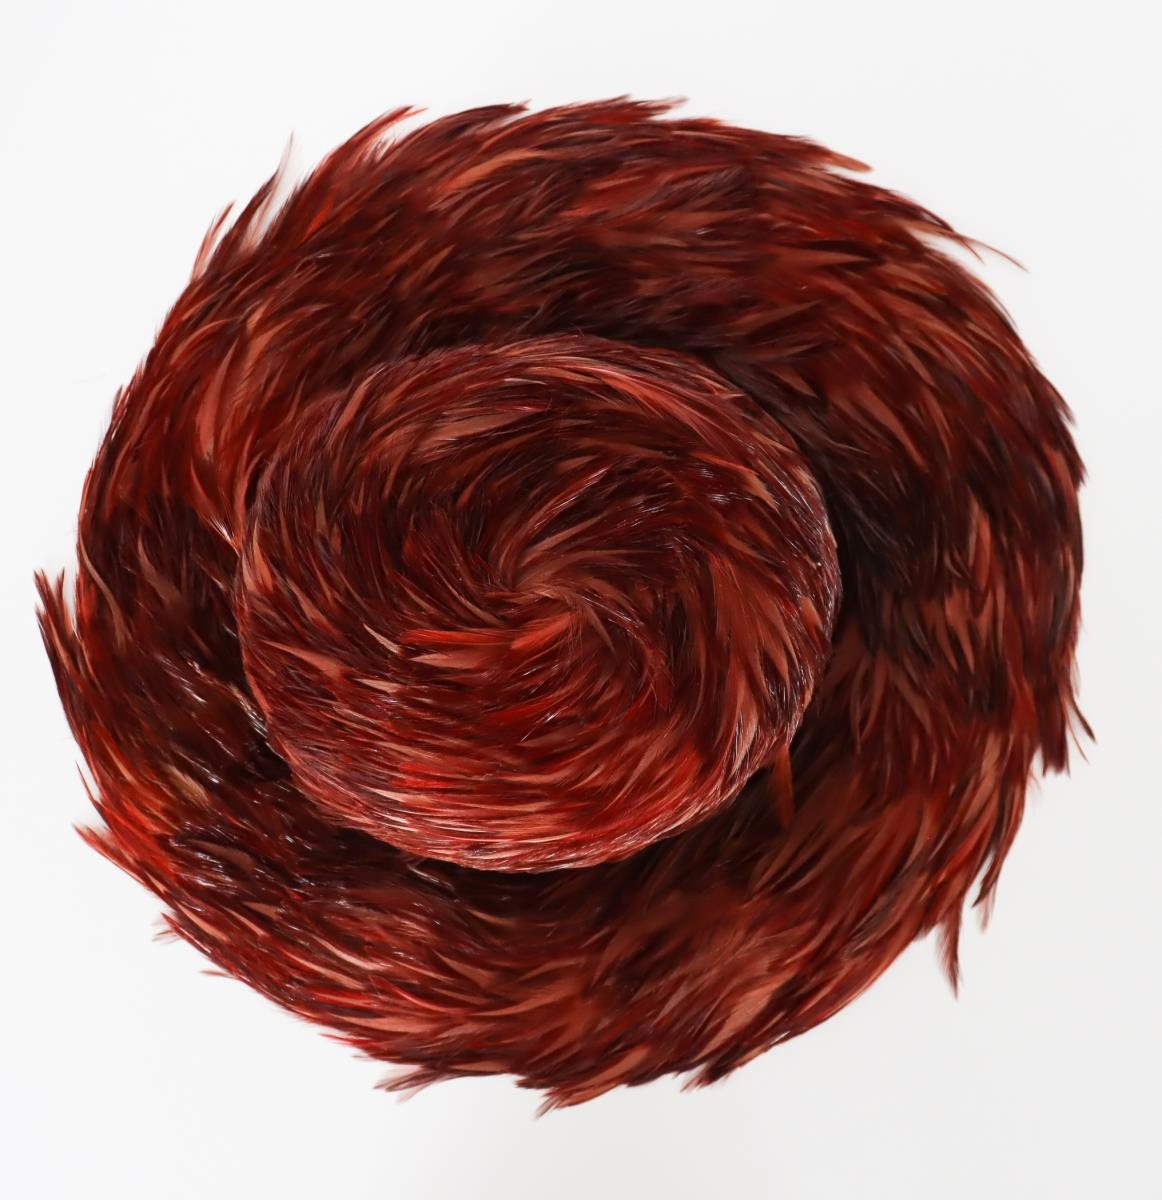 Patricia Underwood Feather Hat - Image 3 of 9